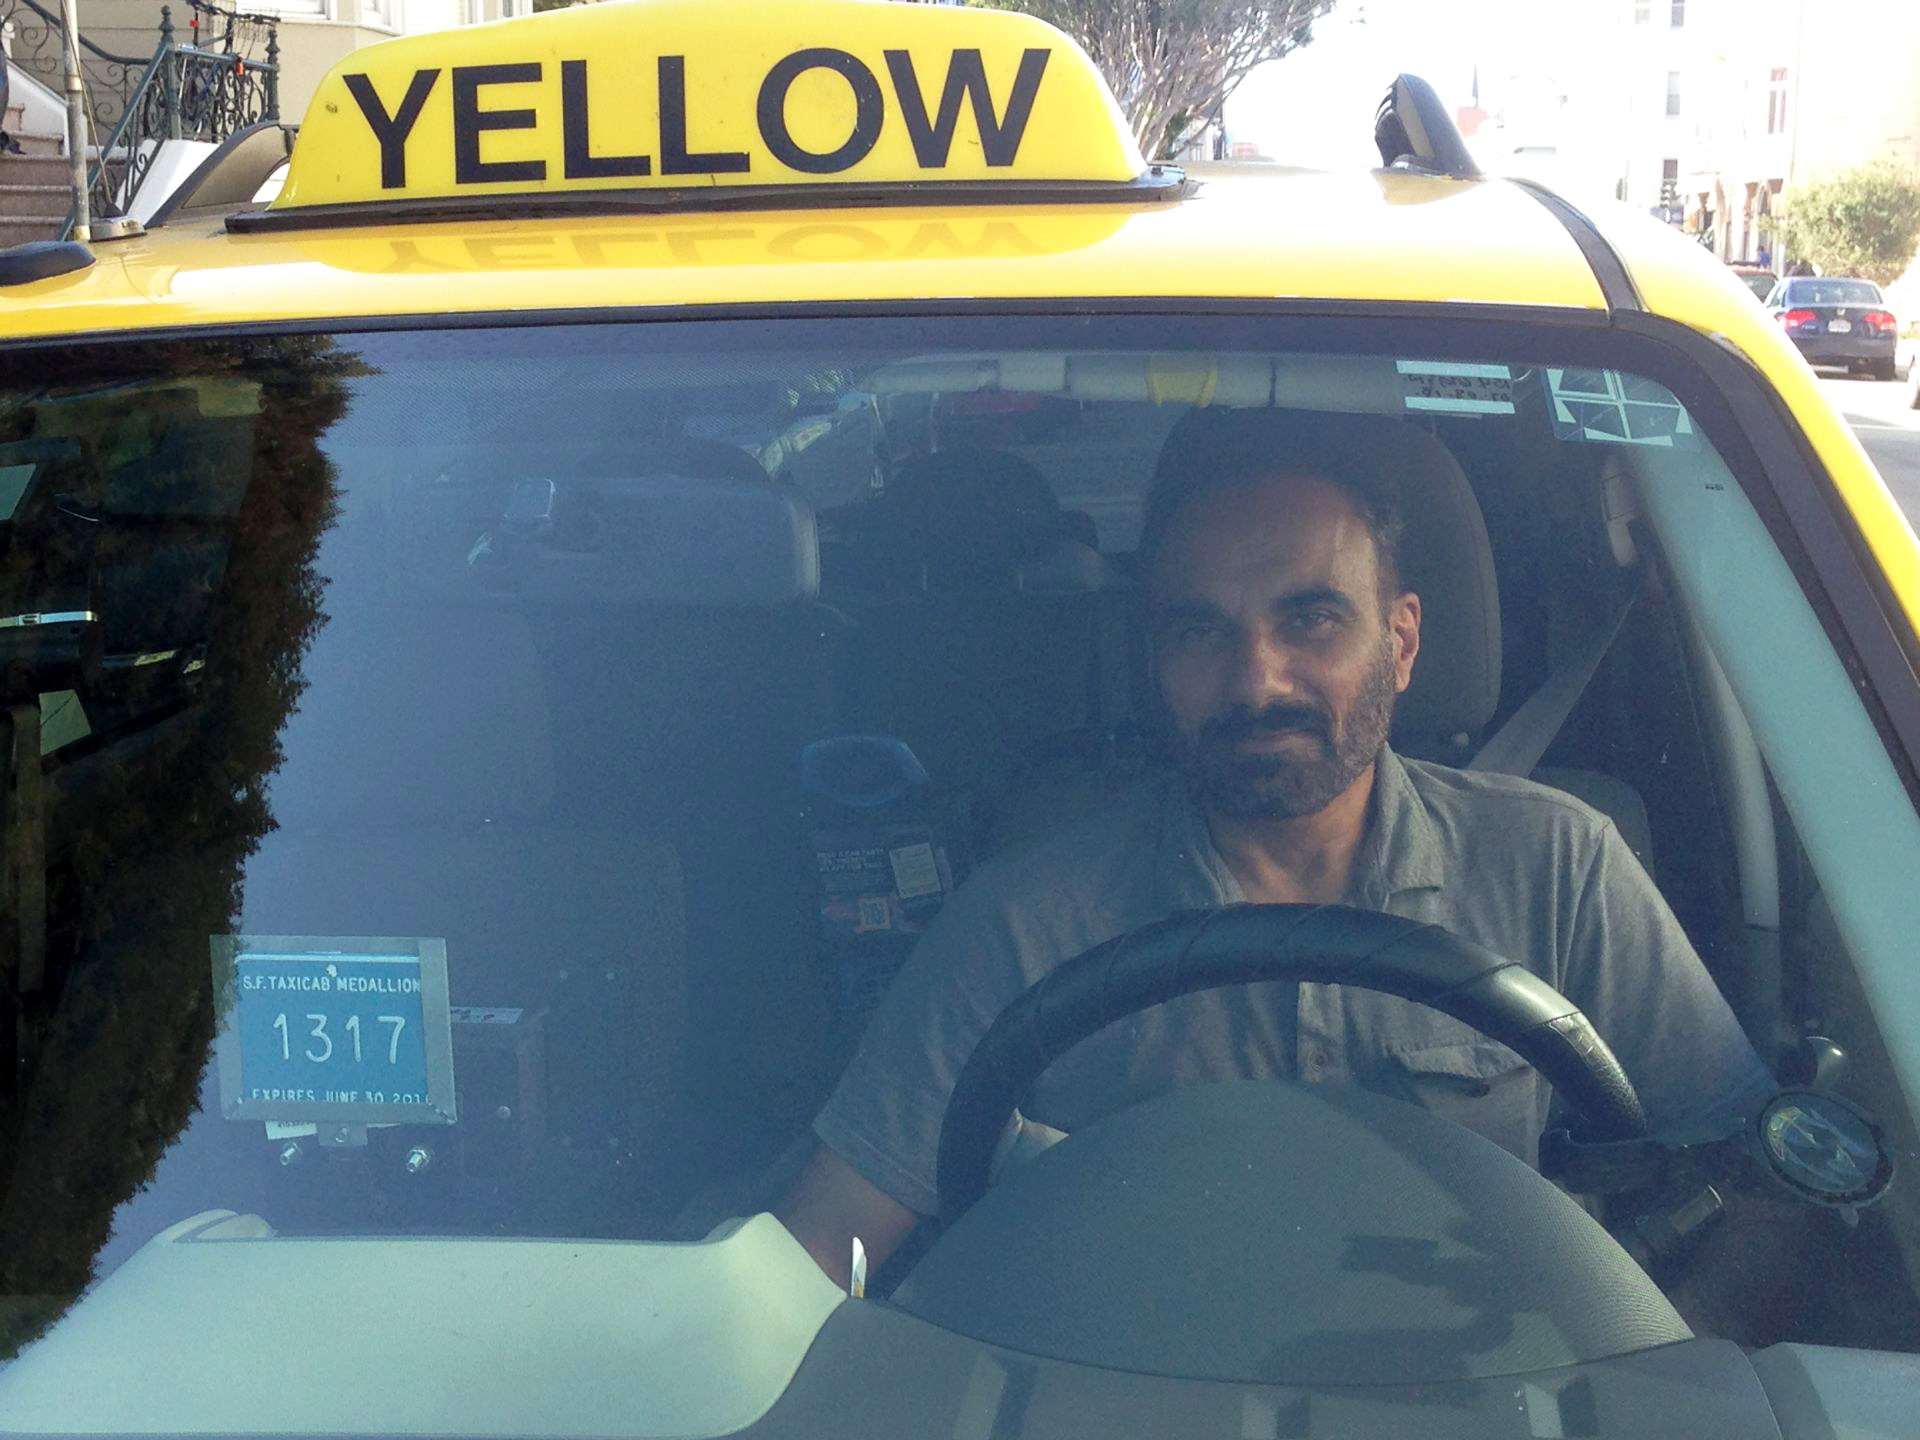 Taxi driver Harbir Batth feels trapped by the medallion he waited over a decade to buy.